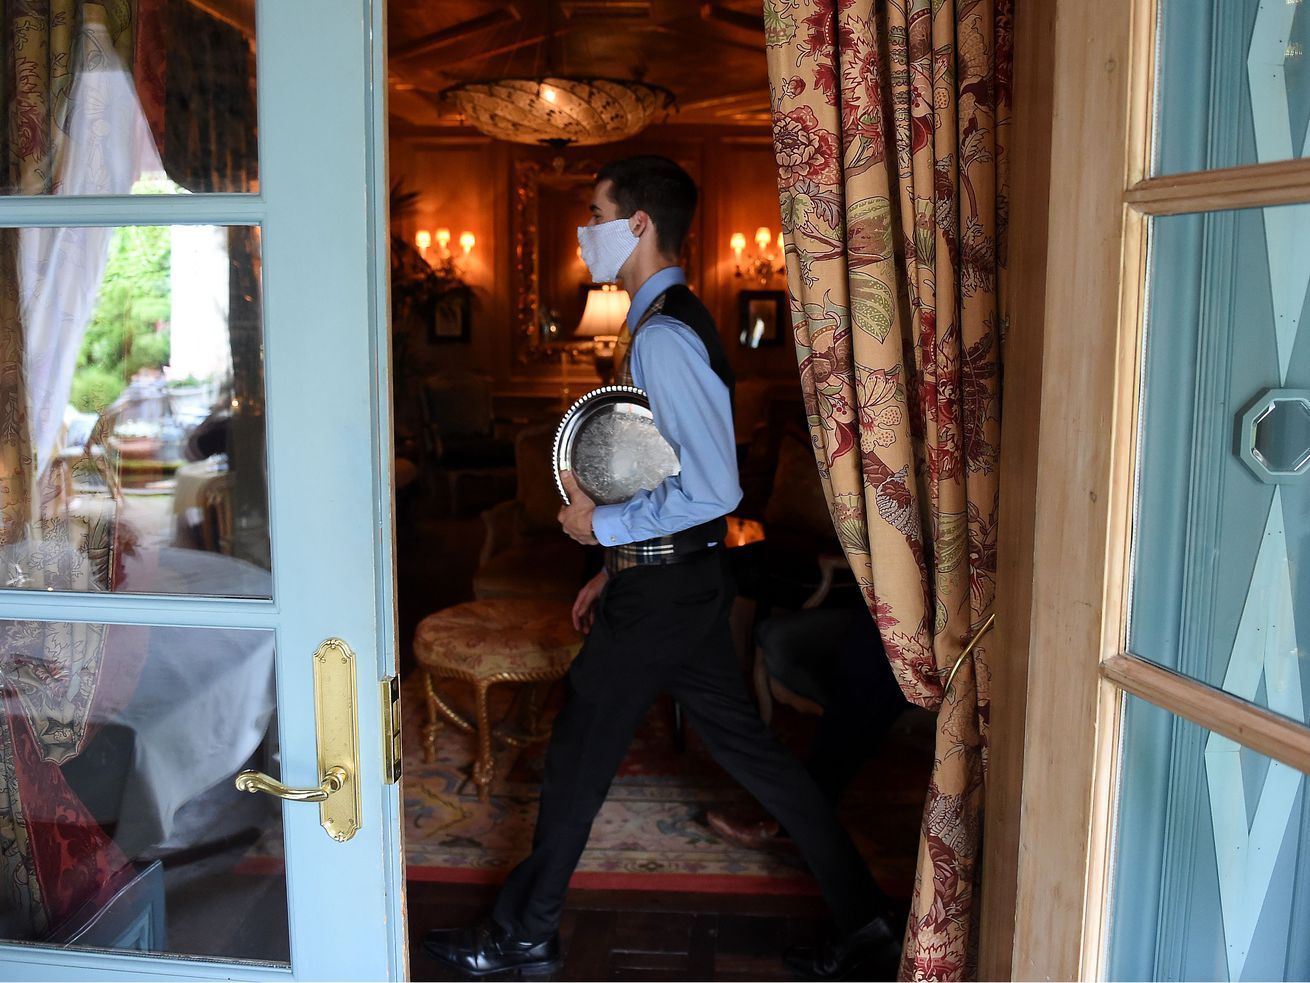 A waiter from The Inn at Little Washington, one of the country's most renowned restaurants, is viewed through an open door wearing a face mask while carrying a silver tray through a fancy dining room.